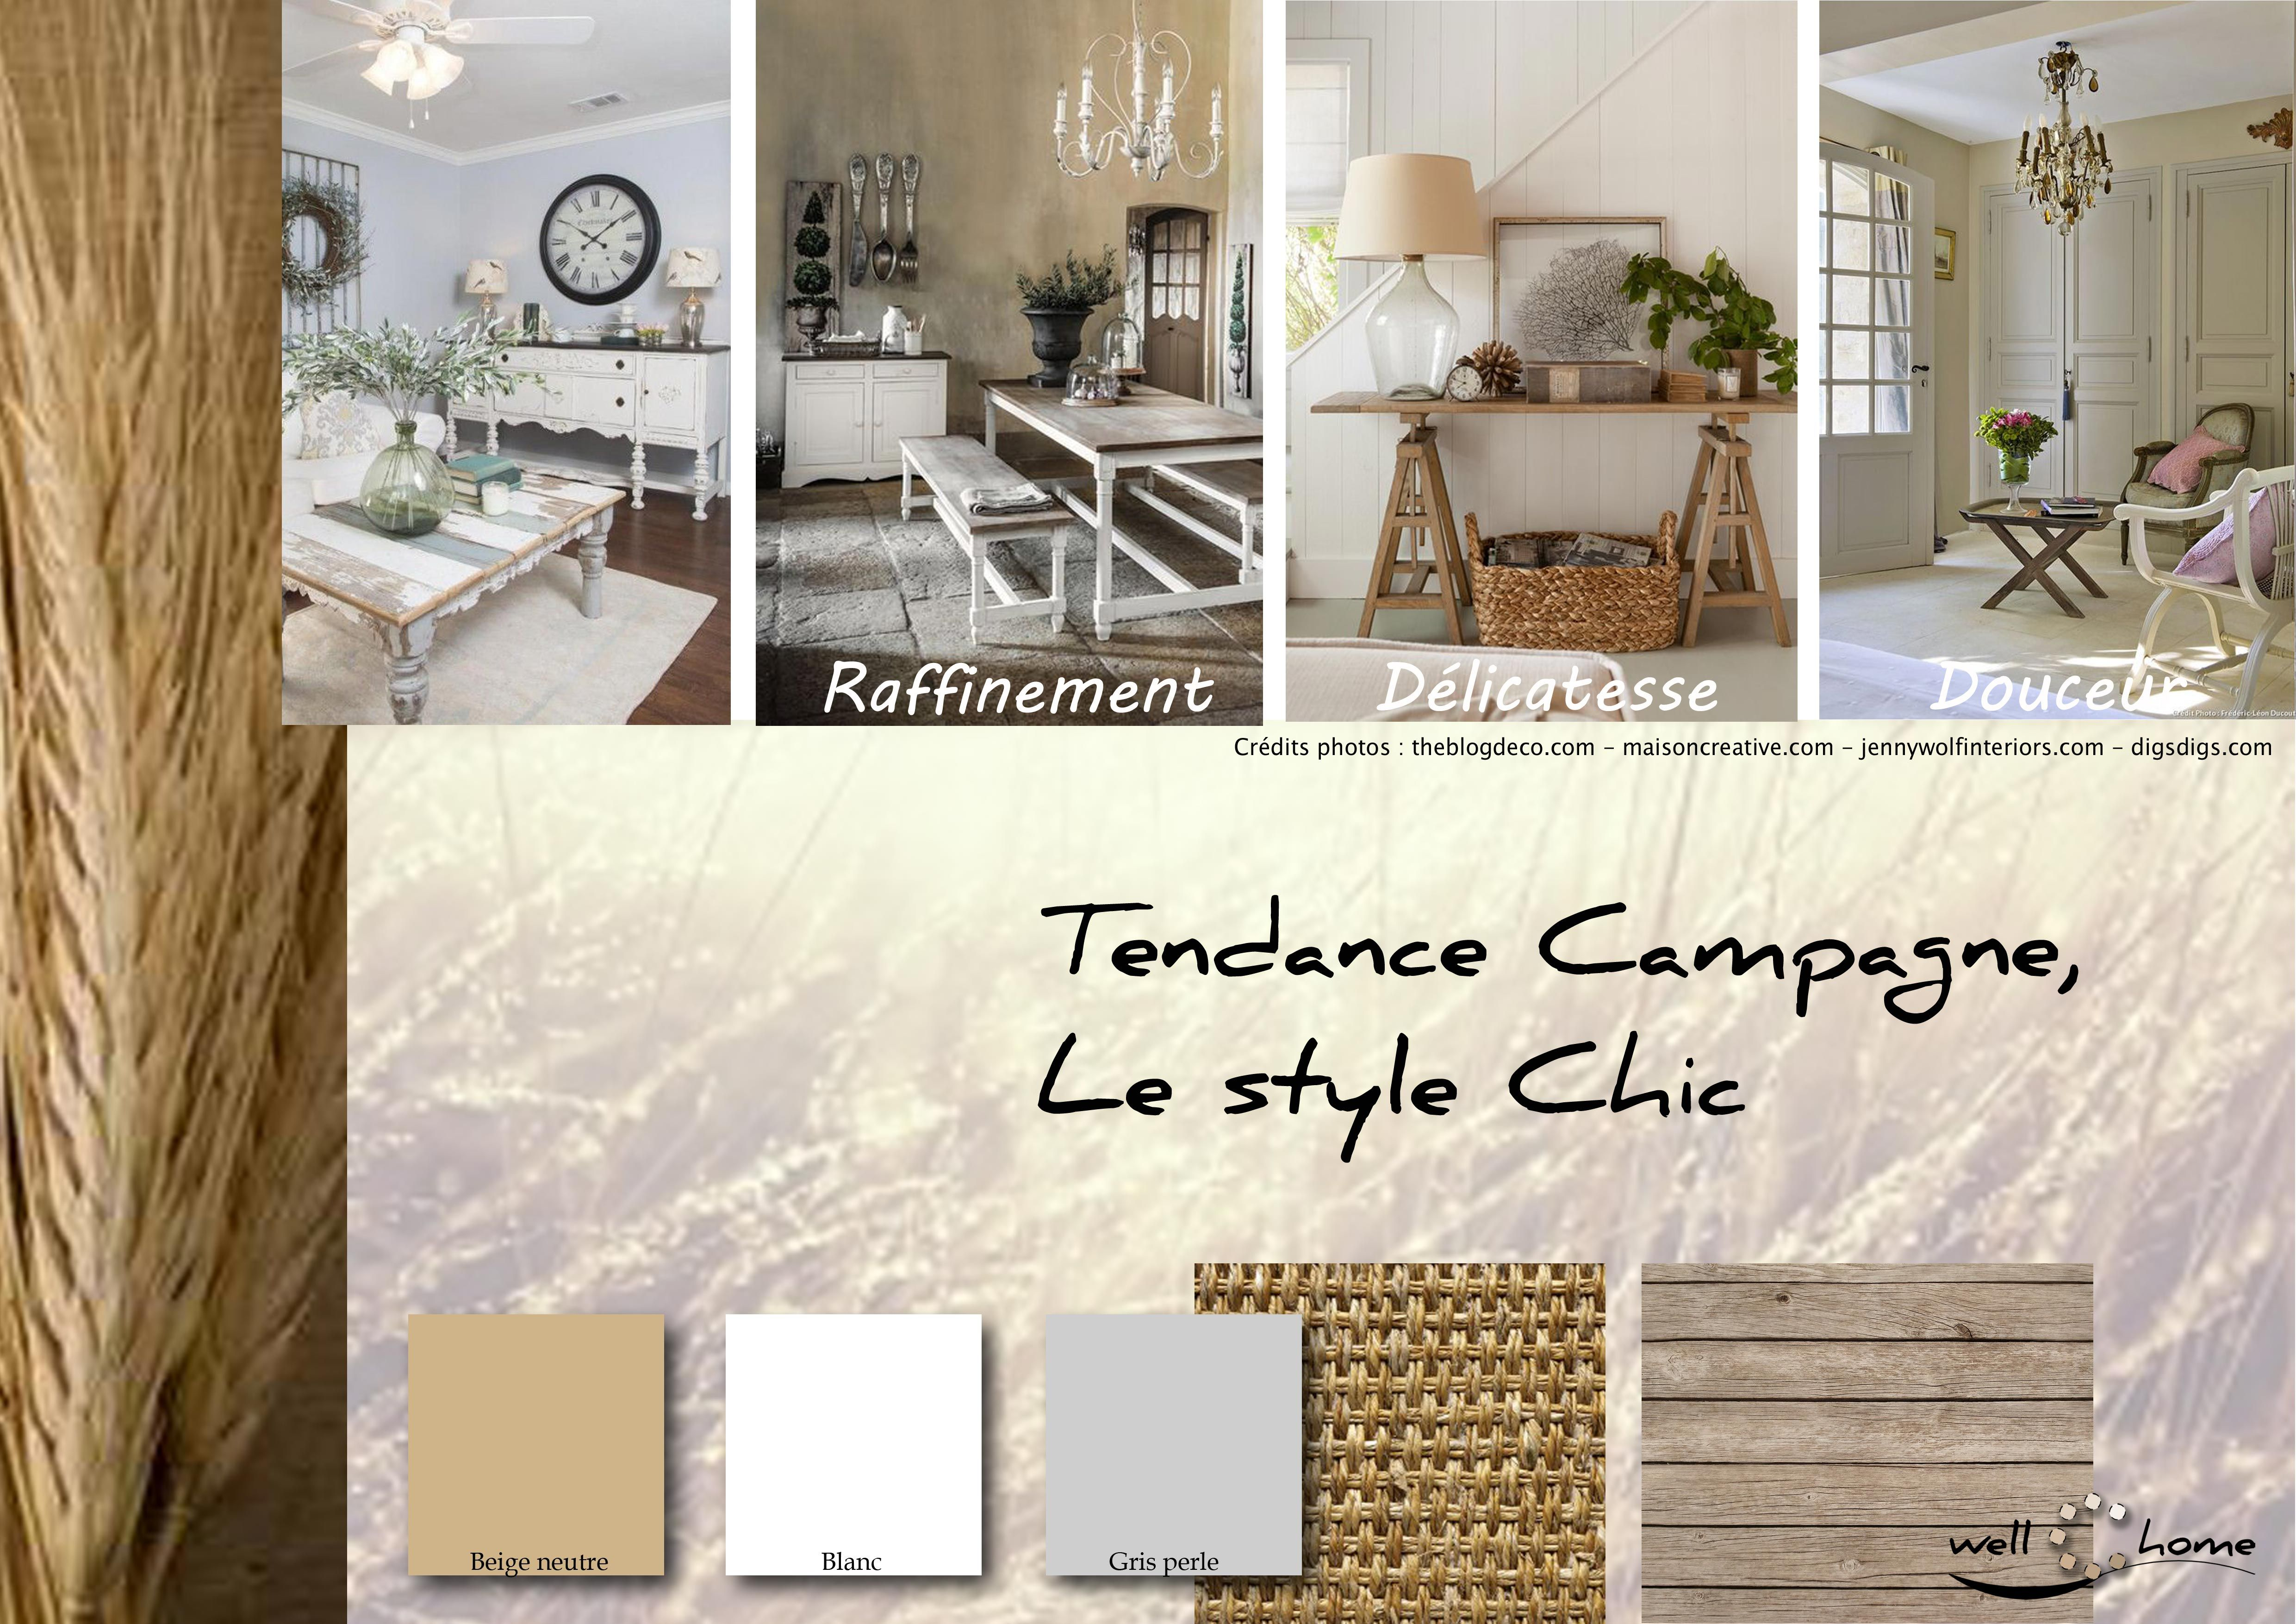 moodboard d co planche d 39 ambiance tendance campagne style chic r alisation well c home. Black Bedroom Furniture Sets. Home Design Ideas